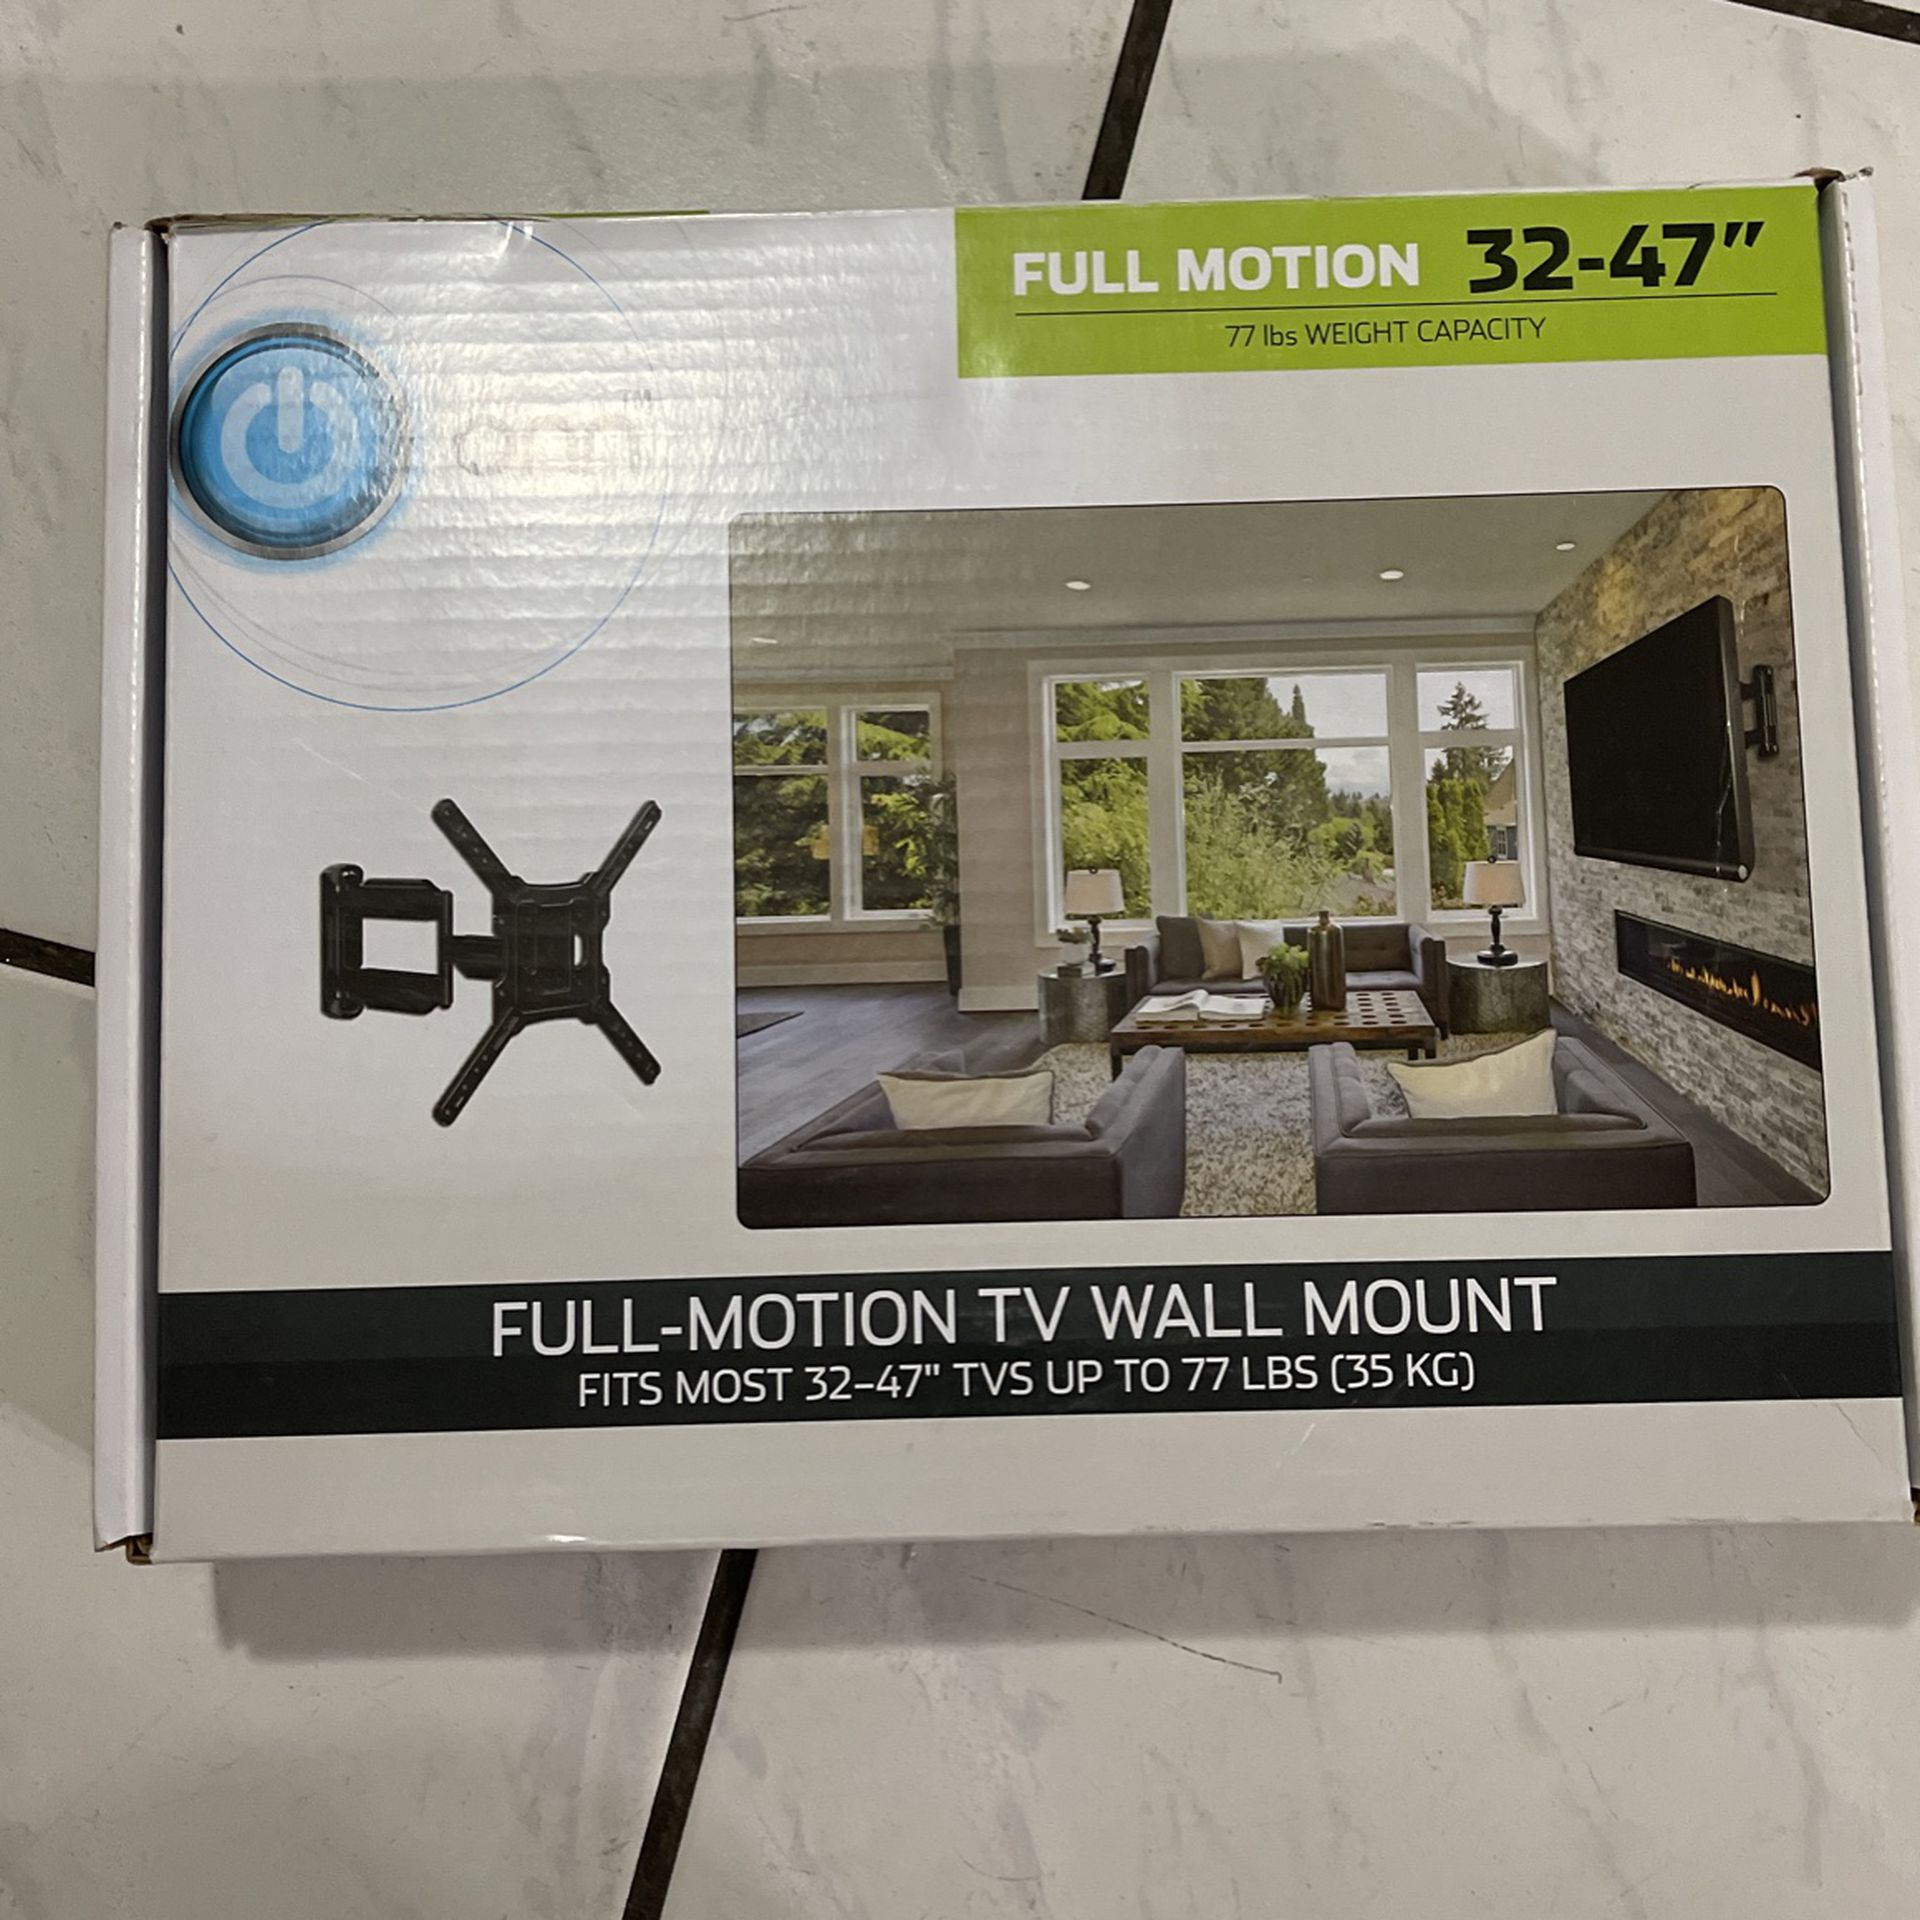 Full -Motion Tv Will Mouth